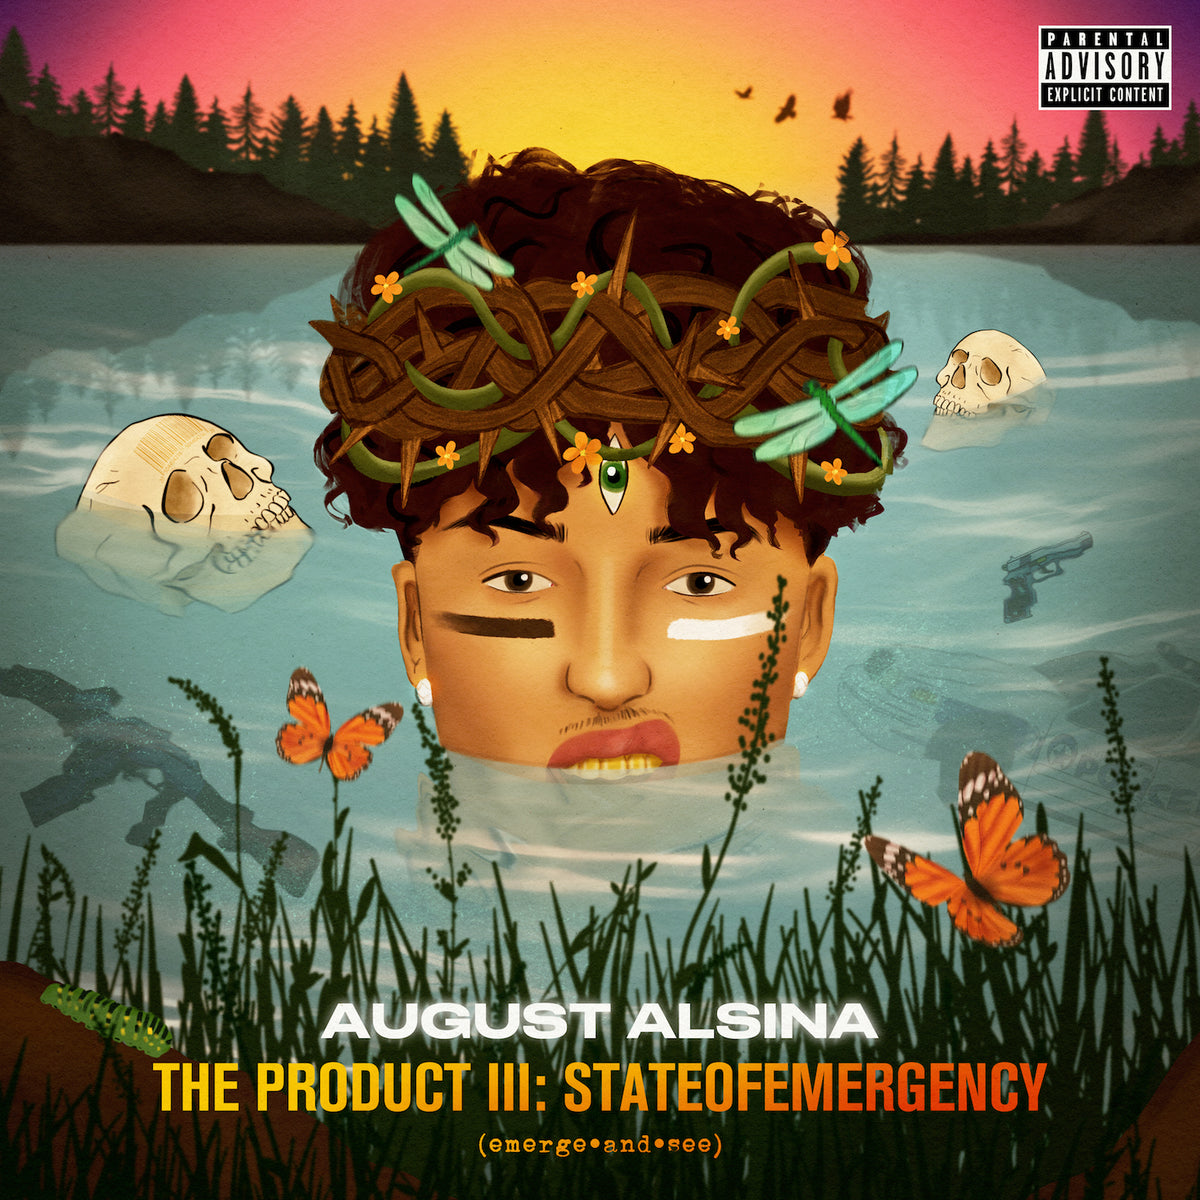 August Alsina - The Product III: stateofEMERGEncy CD + Digital DL